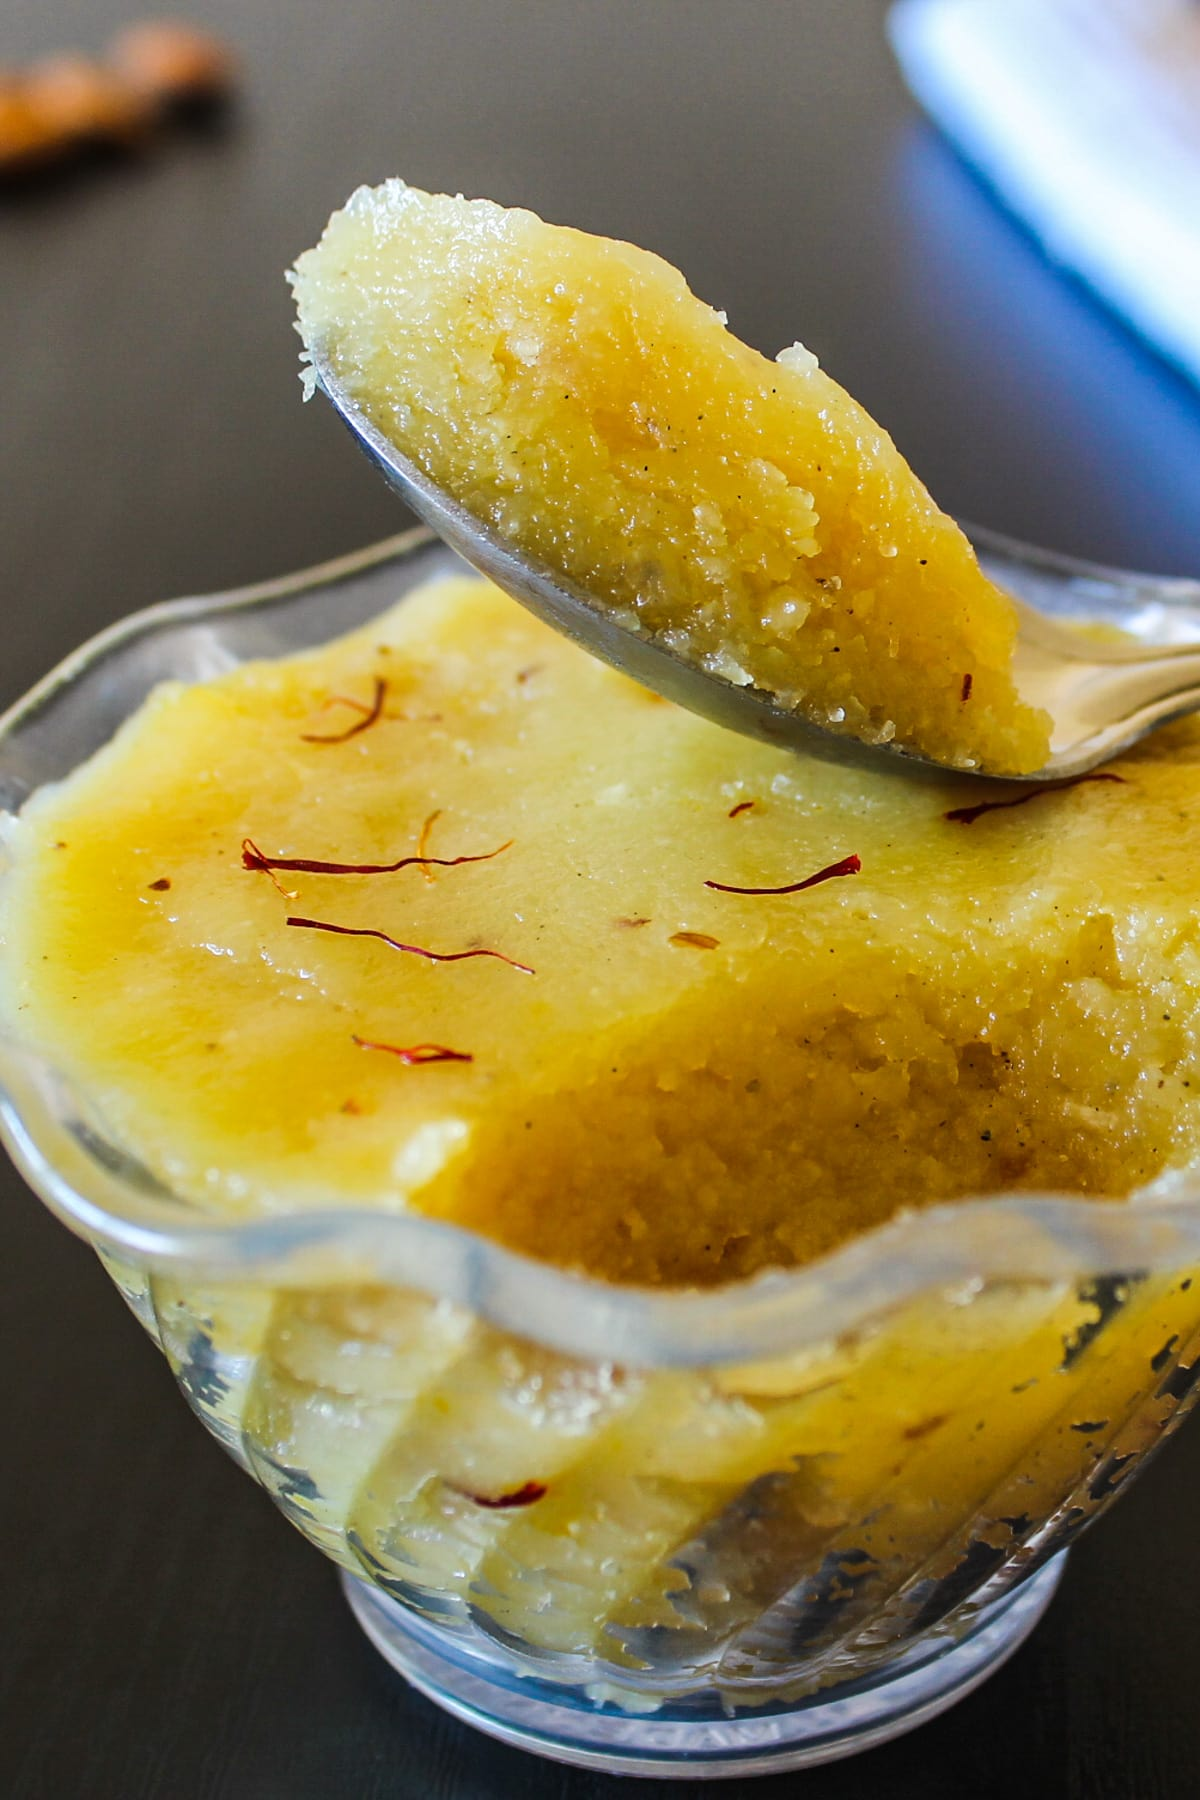 Badam halwa take with a spoon ready to eat